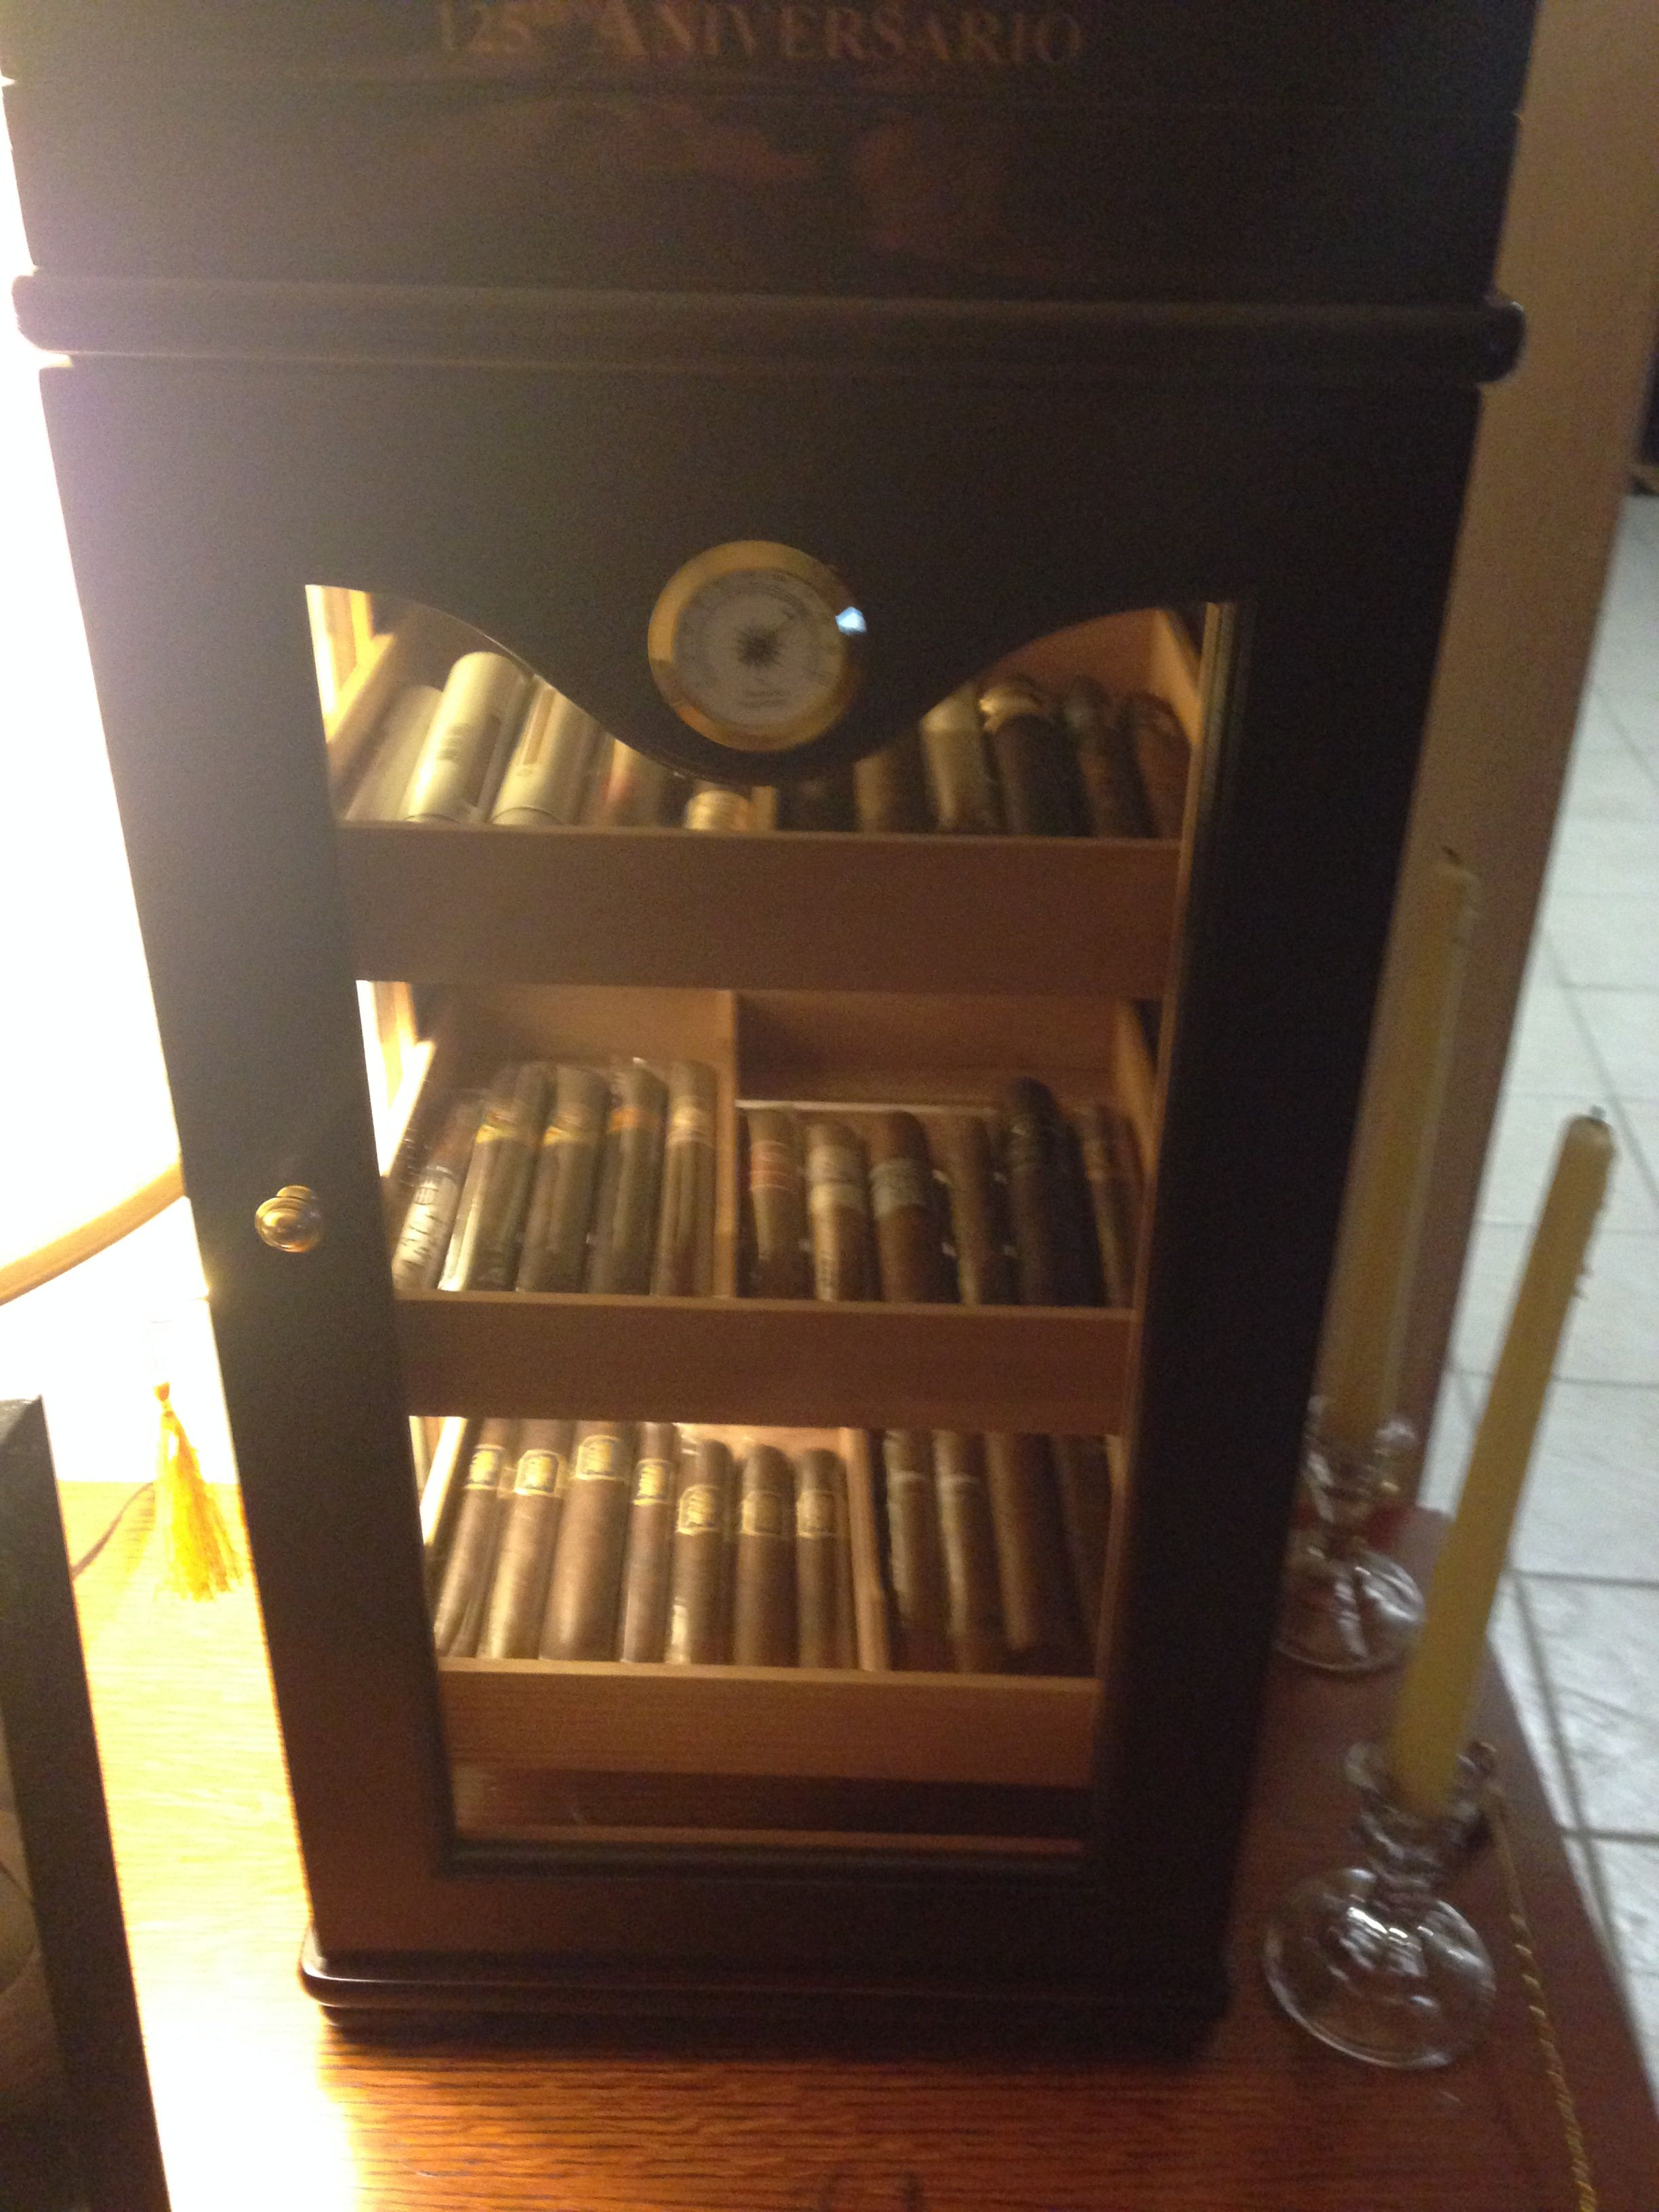 Cigars International gave me an incredible deal on this Stand up Display Humidor for my show piece cigars....